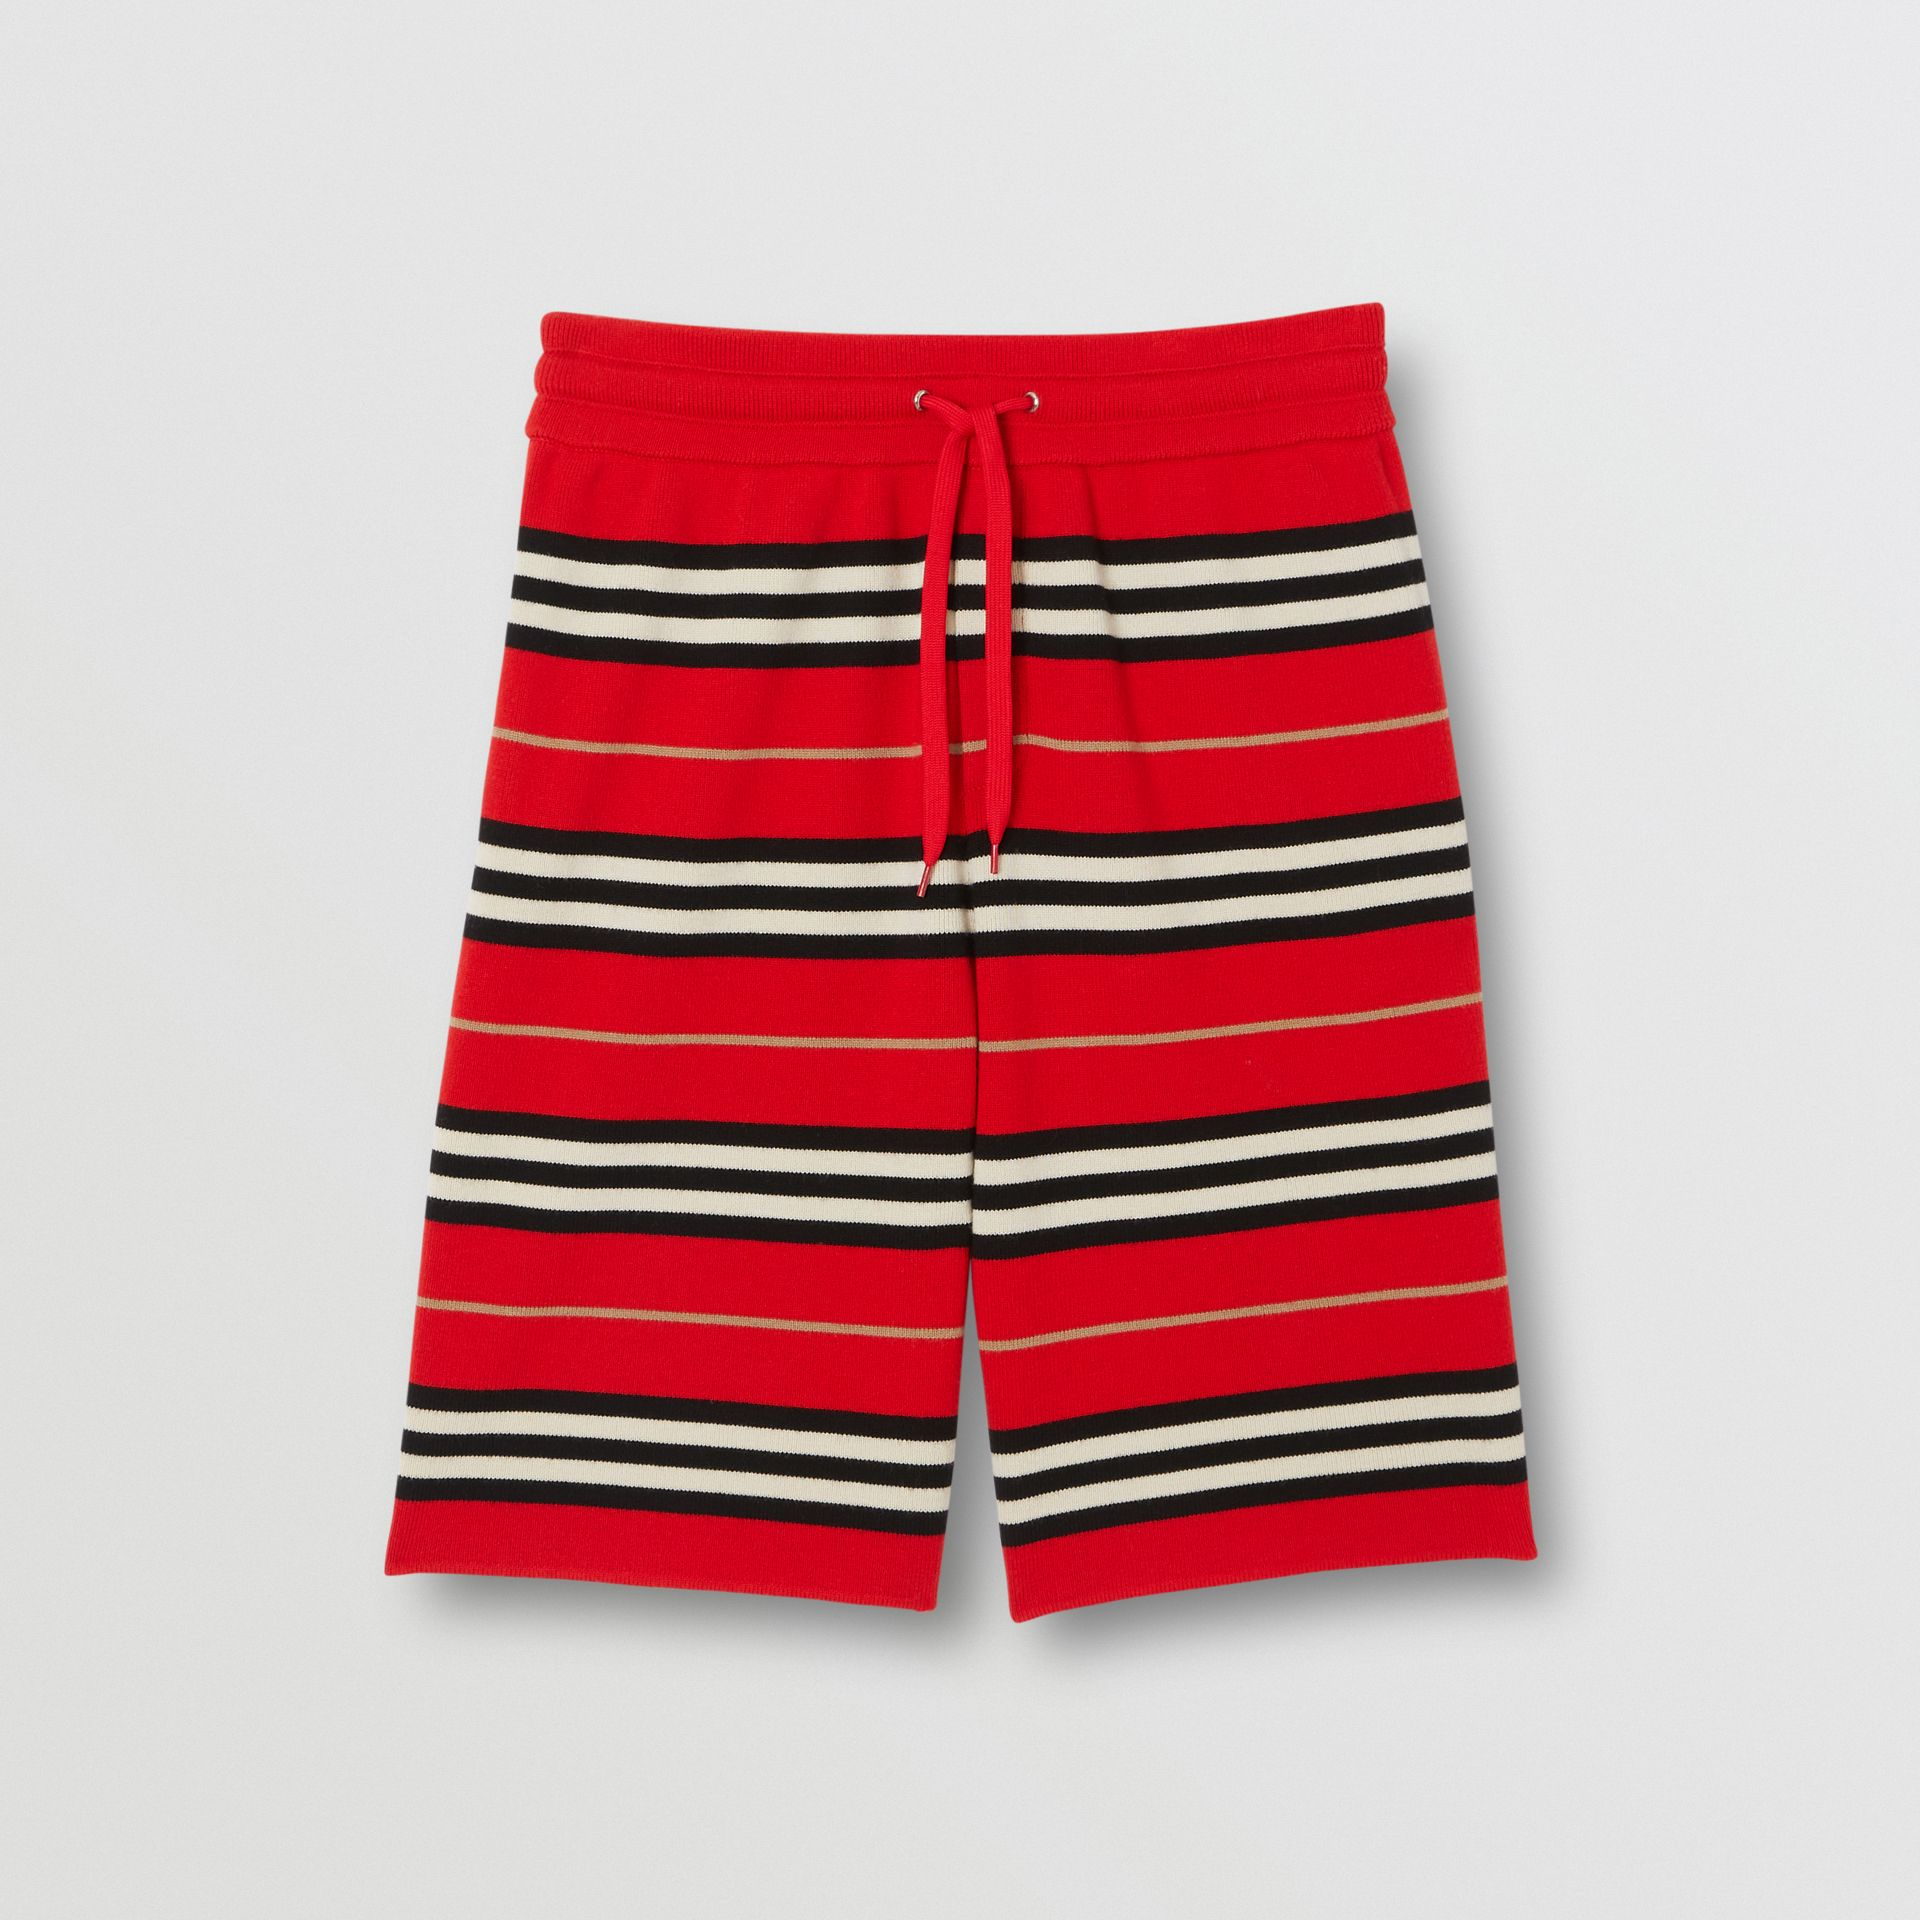 Merino Wool Drawcord Shorts in Bright Red - Men | Burberry Hong Kong - gallery image 3